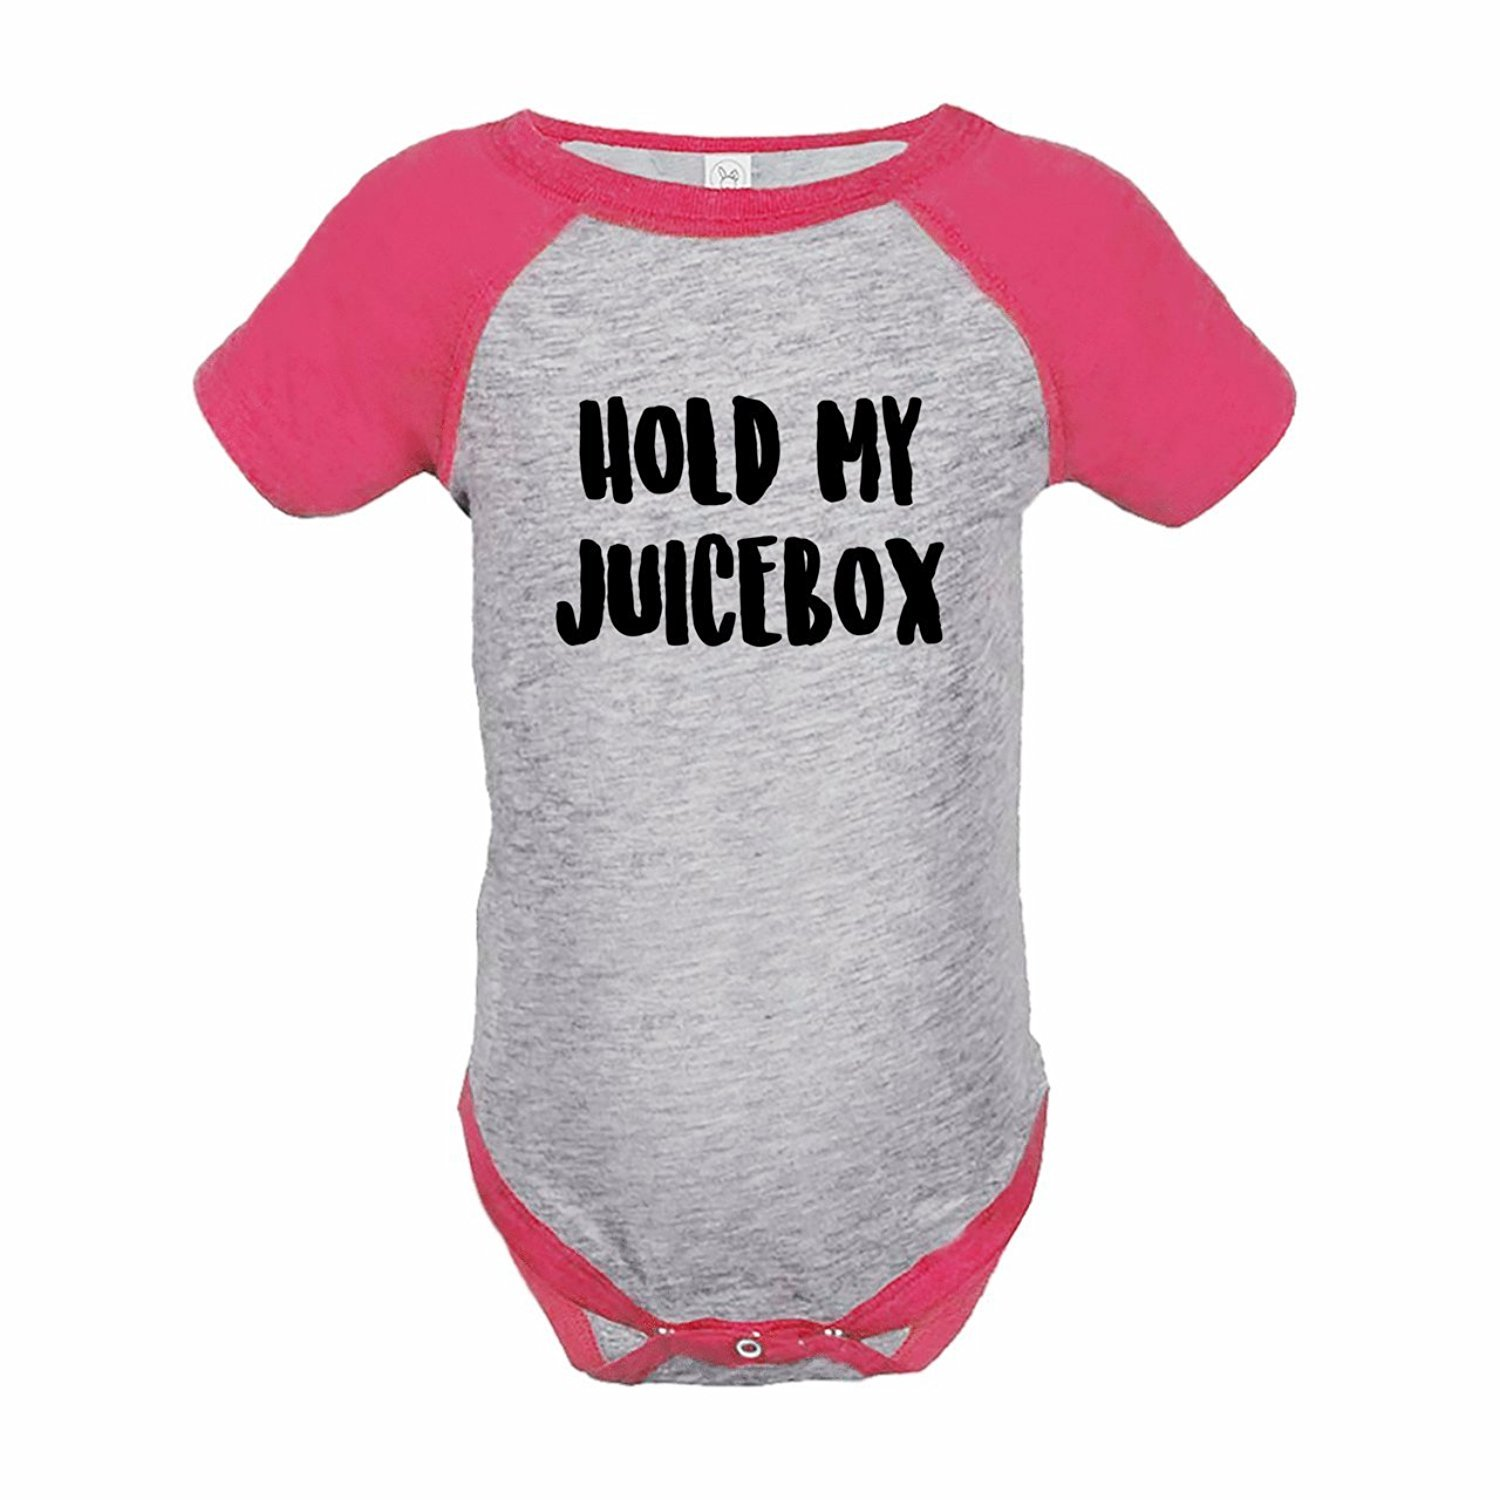 7 ate 9 Apparel Funny Kids Hold My Juicebox Baseball Onepiece Pink - 12 Months